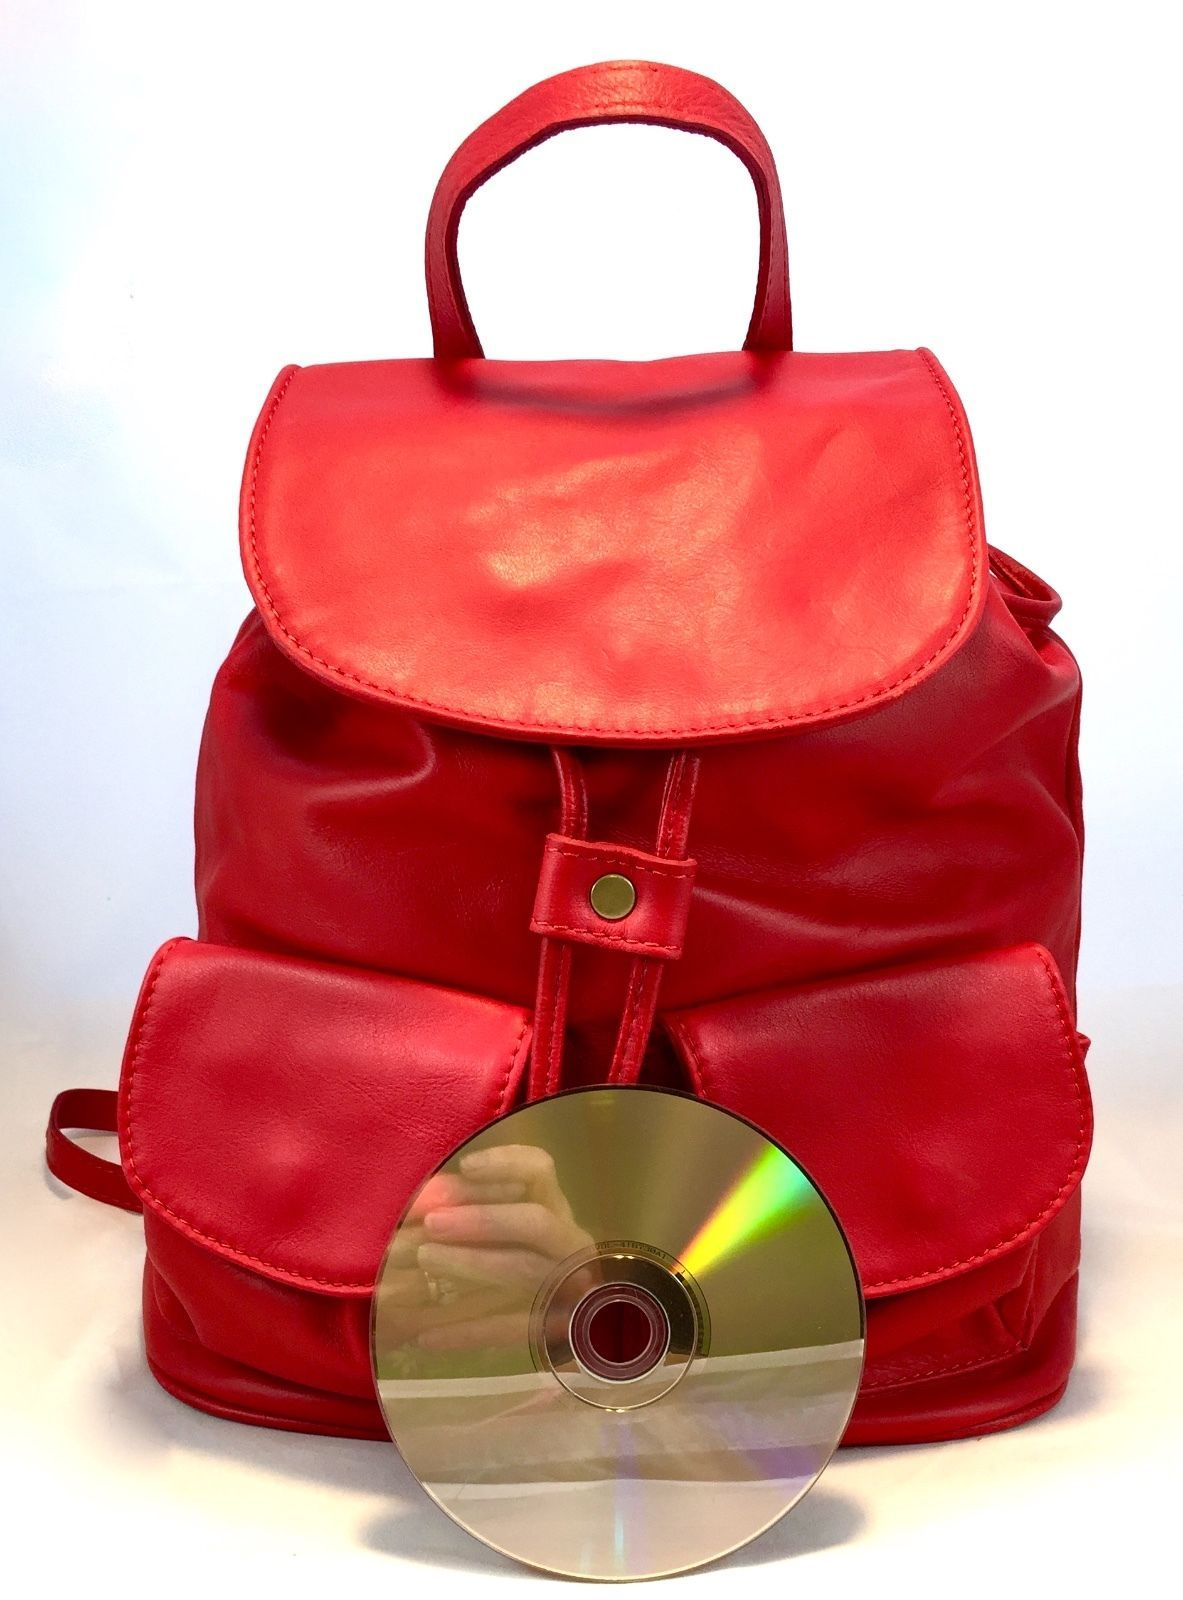 New Made in Italy Red Leather Backpack Shoulder Bag Handbag Purse